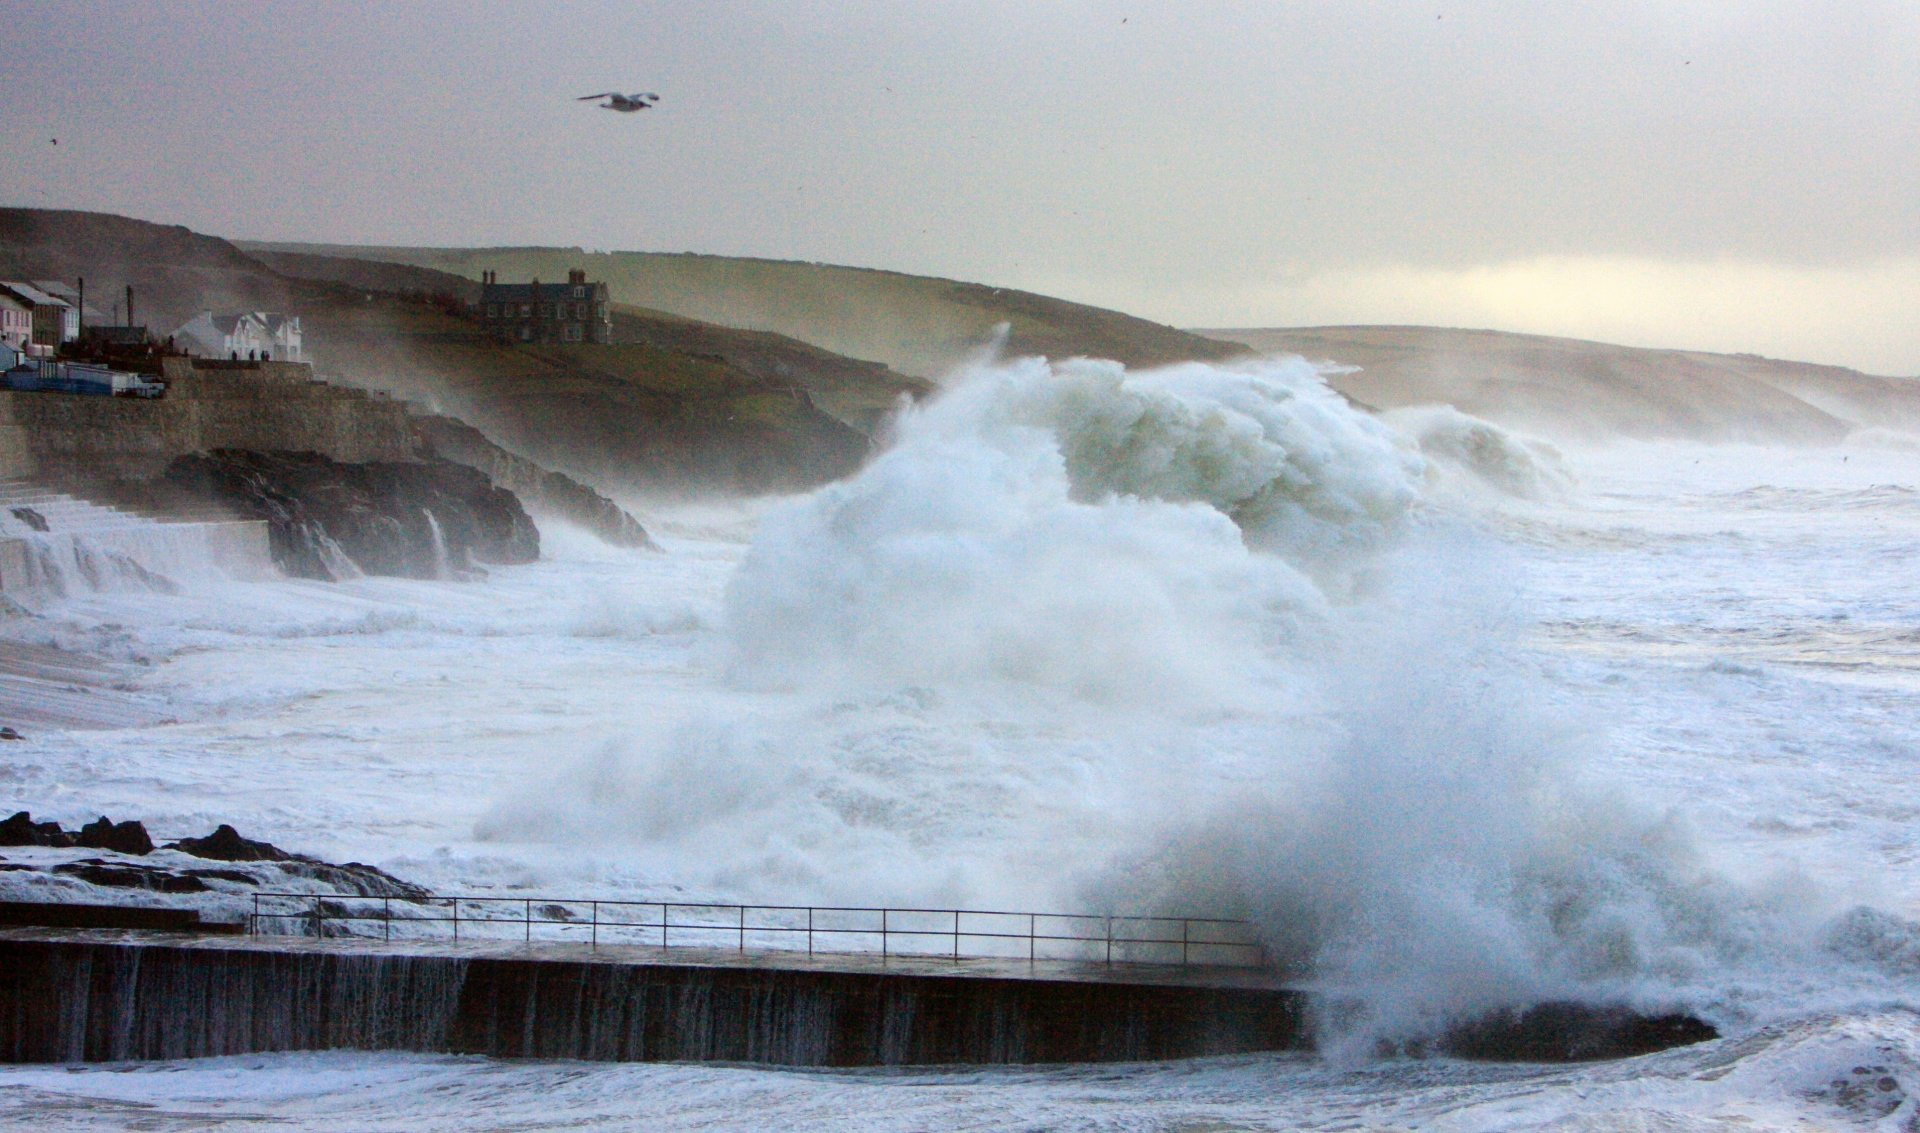 petesimmo's photo of Porthleven